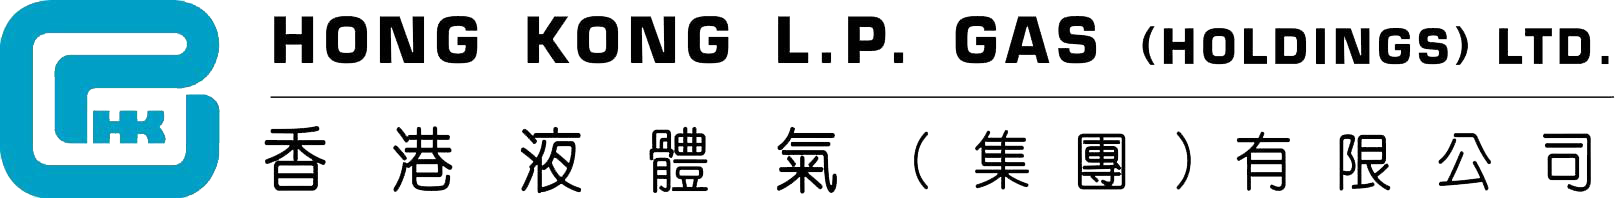 Hong Kong L.P.GAS (HOLDINGS) LTD.